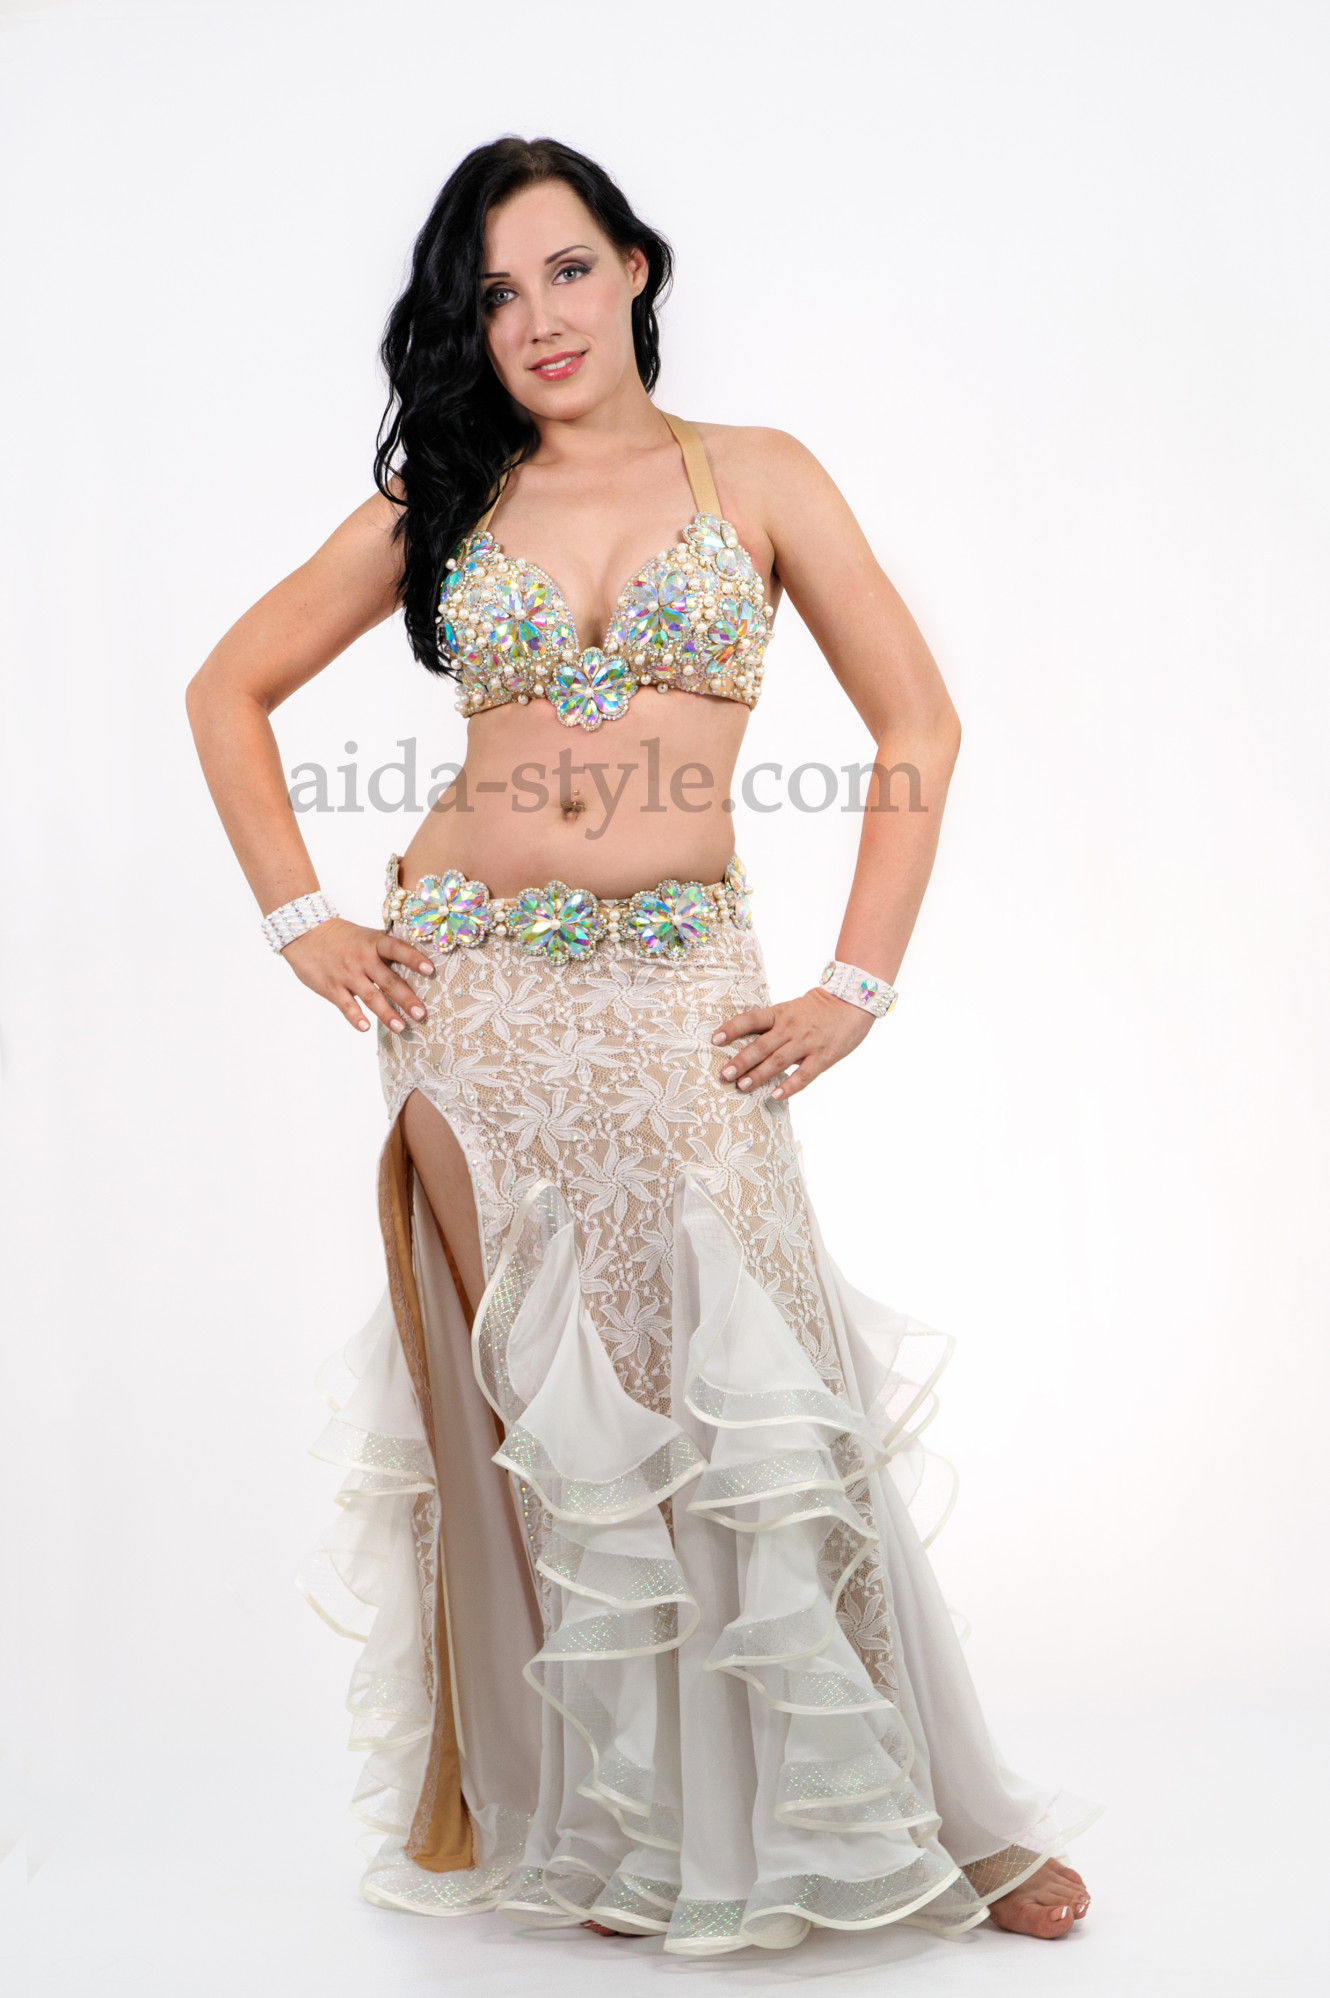 White professional belly dance costume with stones and laces